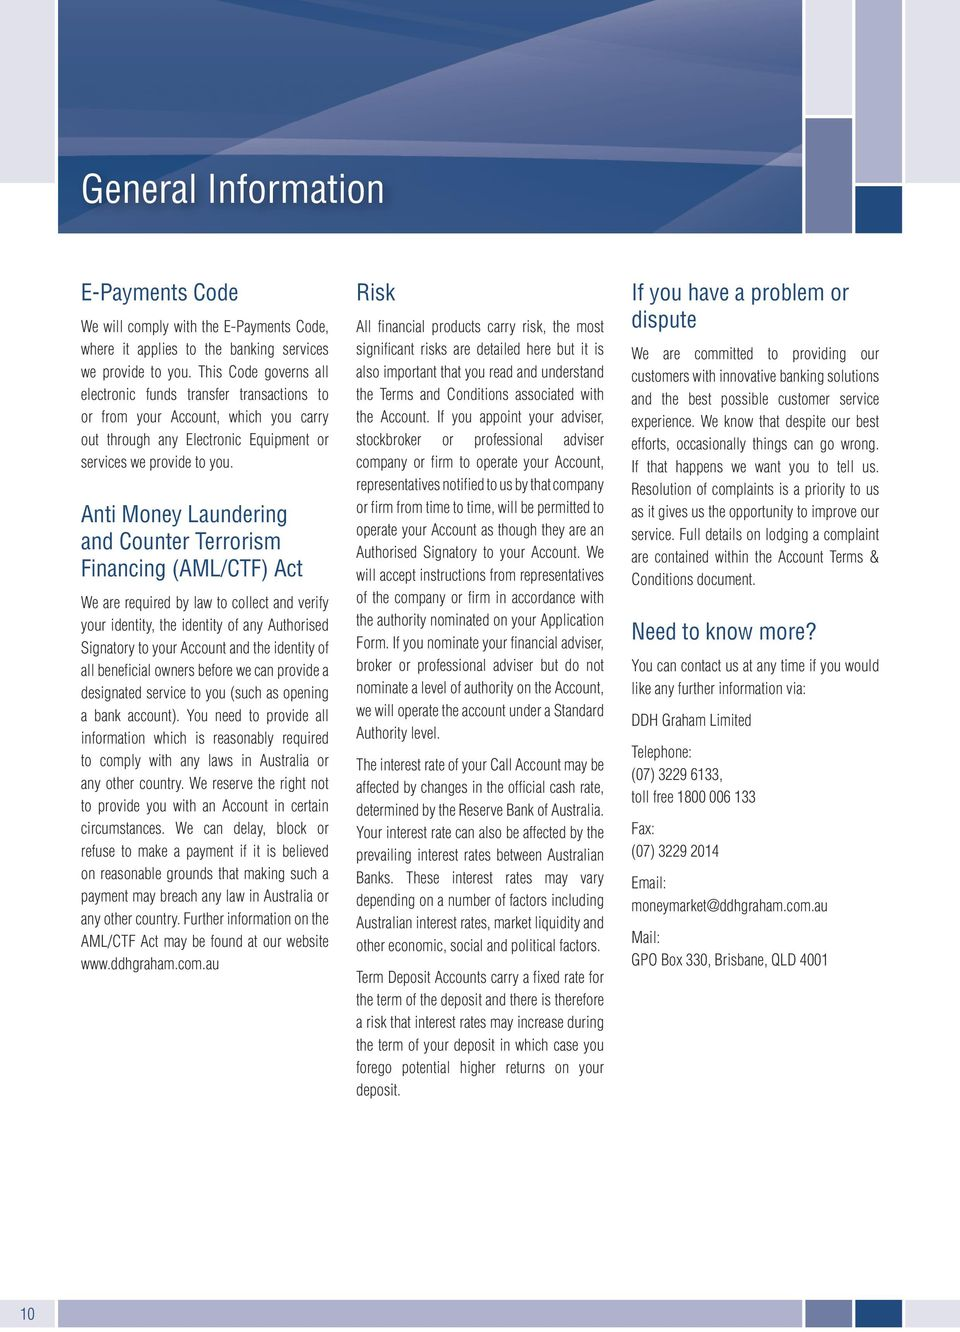 Anti Money Laundering and Counter Terrorism Financing (AML/CTF) Act We are required by law to collect and verify your identity, the identity of any Authorised Signatory to your Account and the